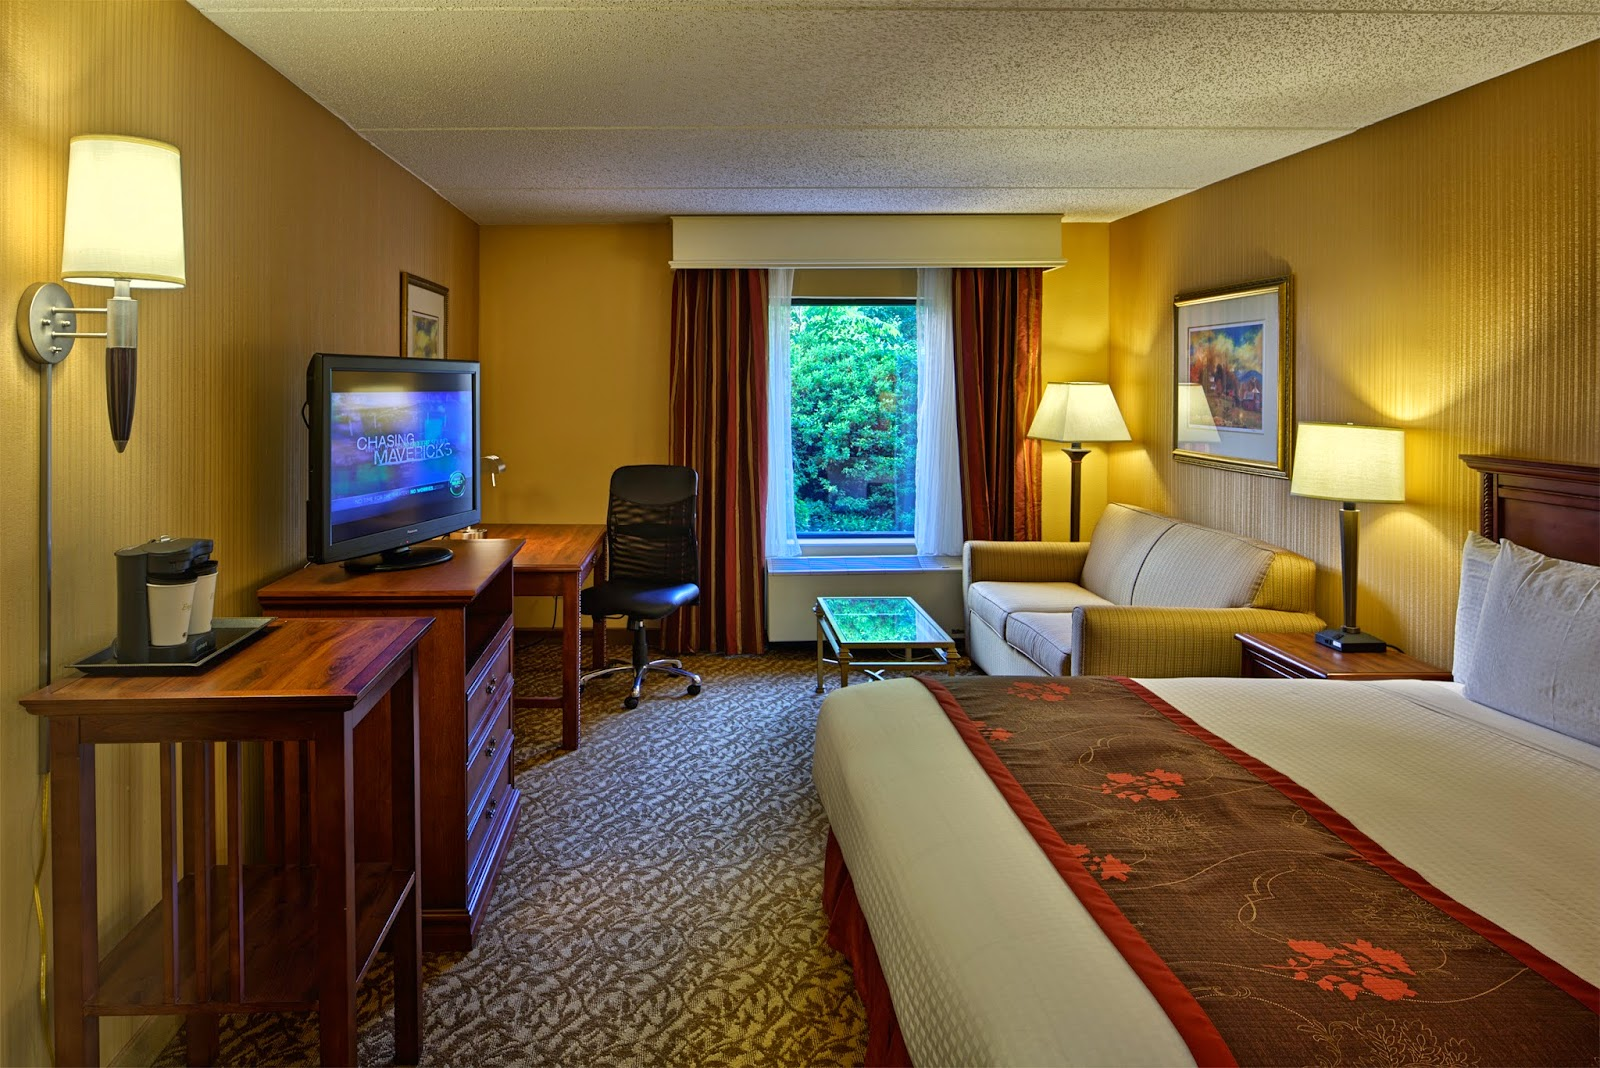 Recenly renovated rooms at the DoubleTree Asheville-Biltmore